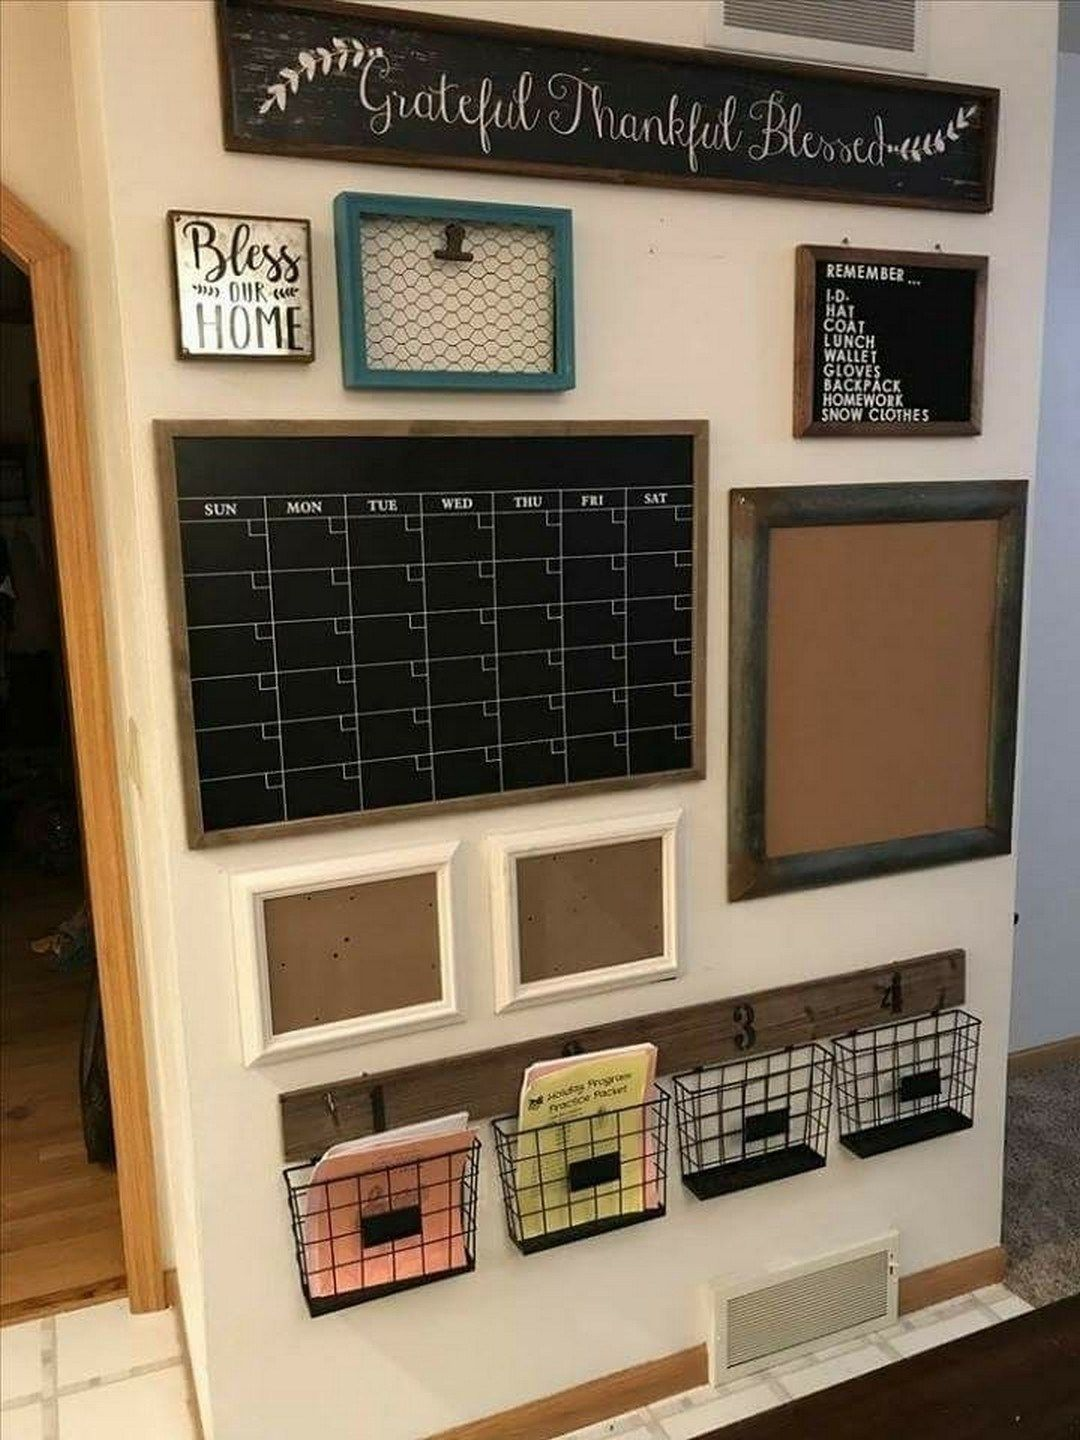 35 Smart Ways To Decorating Family Schedule And Command Center Ideas 26 Farmhouse Office Decor Home Office Organization Home Organization